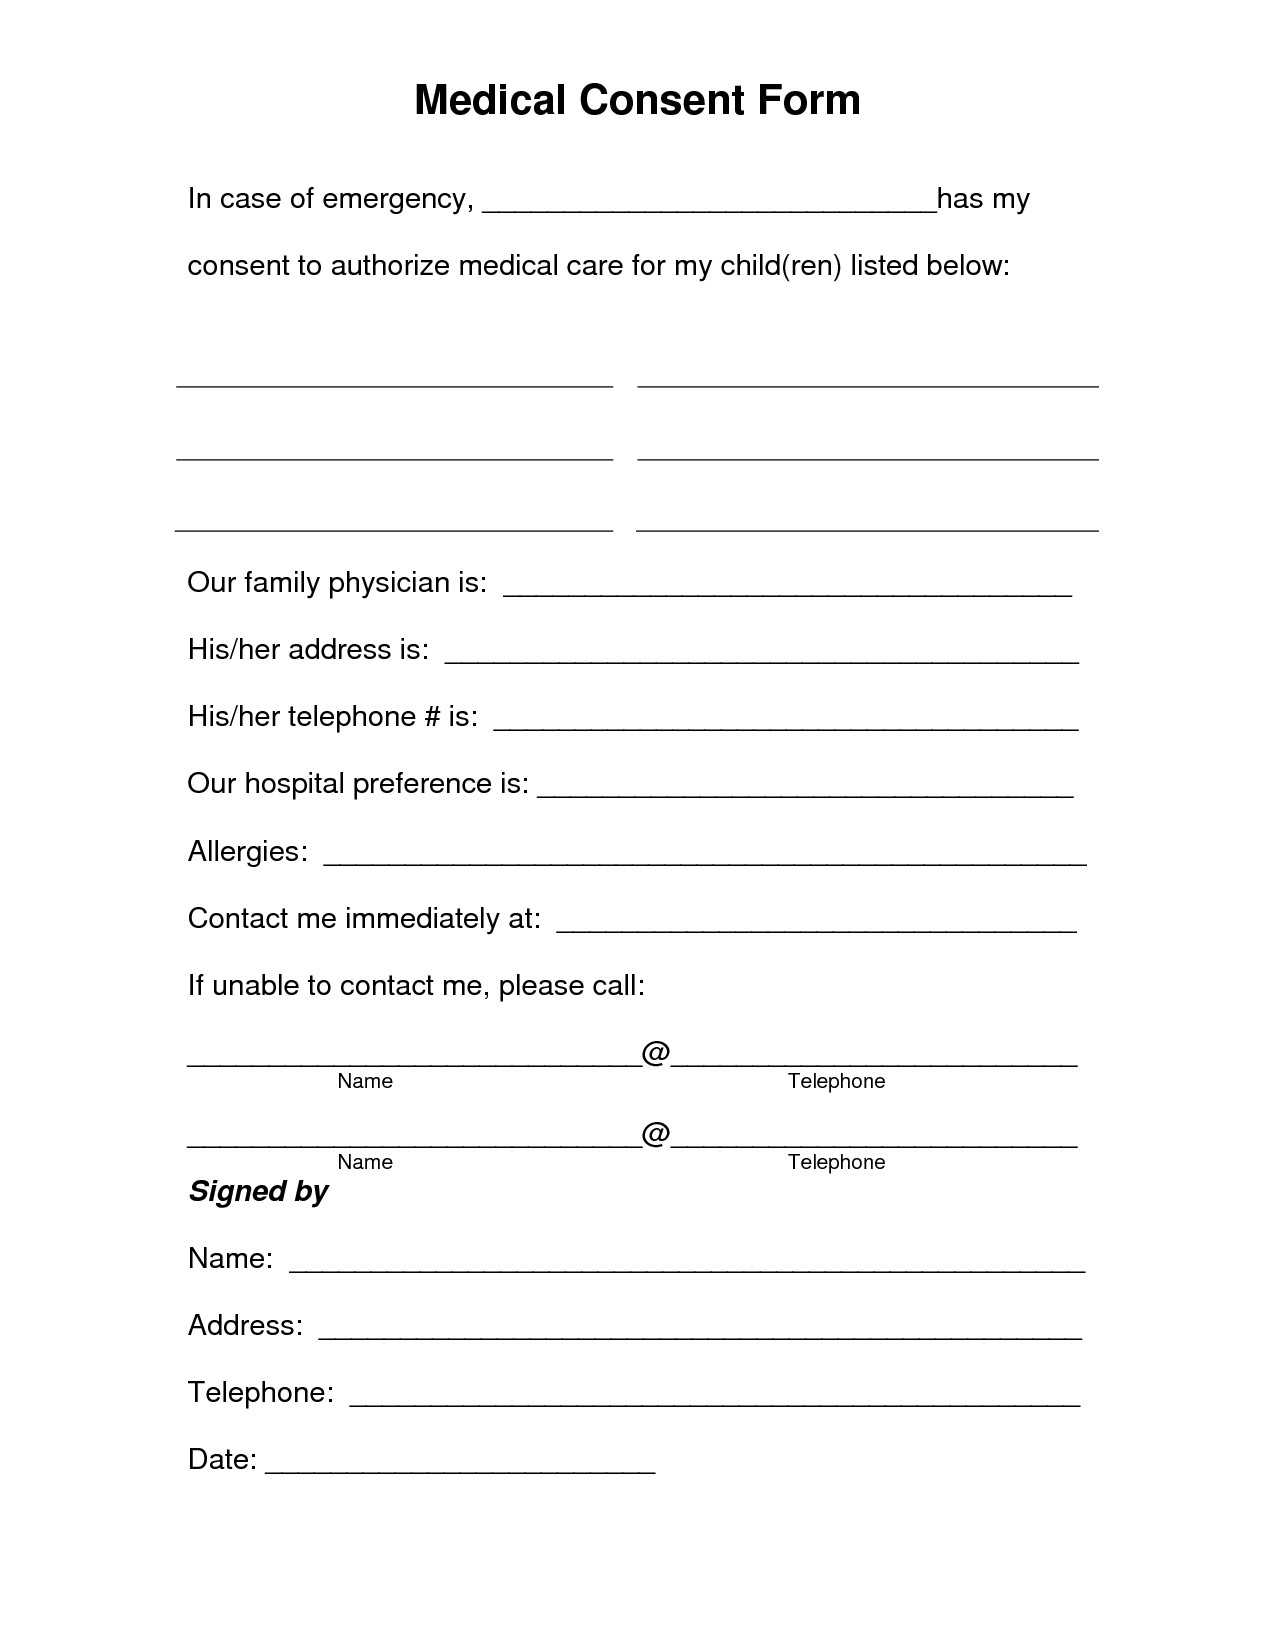 Medical Consent Form For Minor Child Template